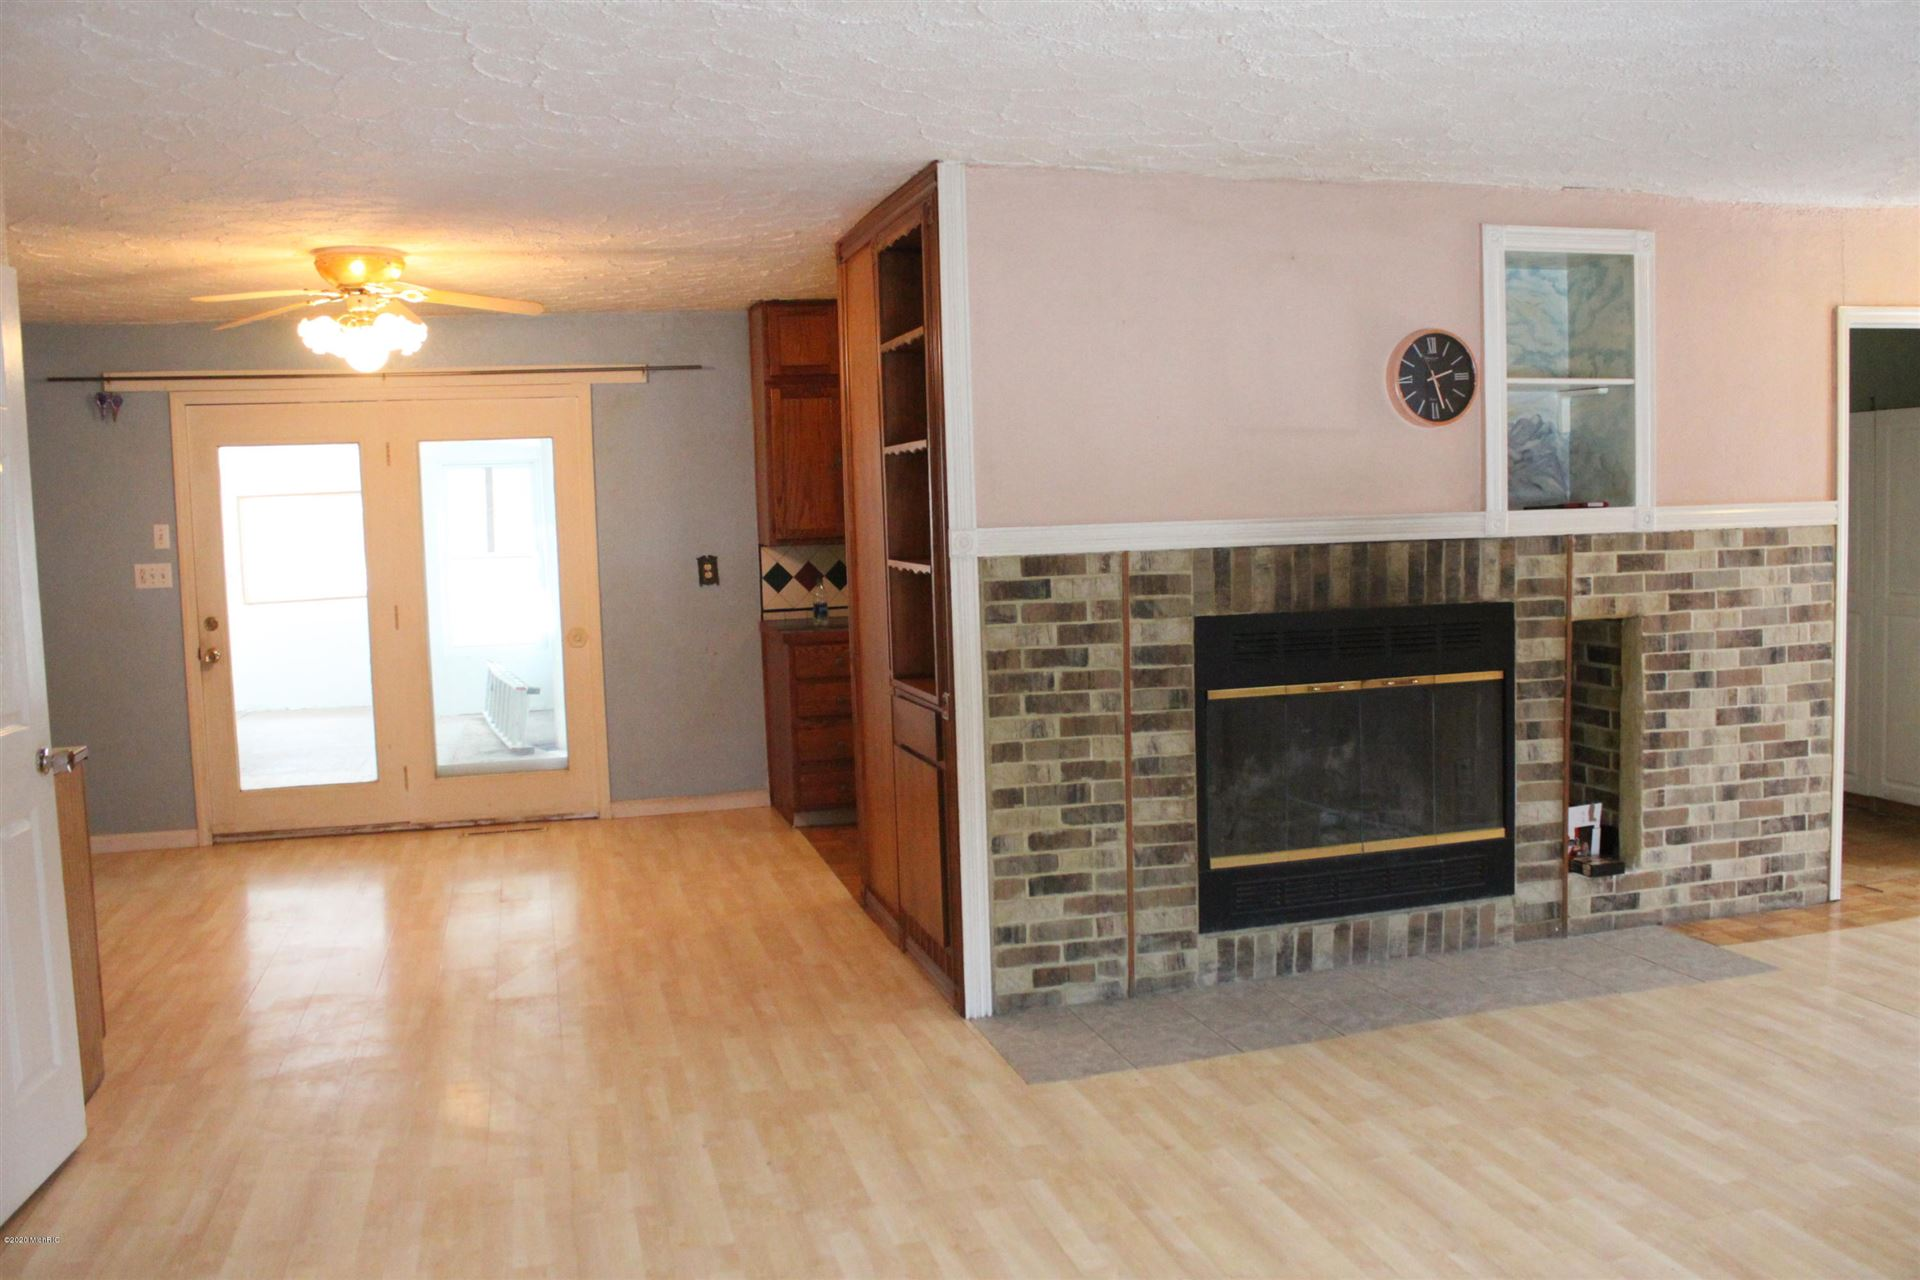 Photo of 1197 S Forest Road, Muskegon, MI 49442 (MLS # 20006826)